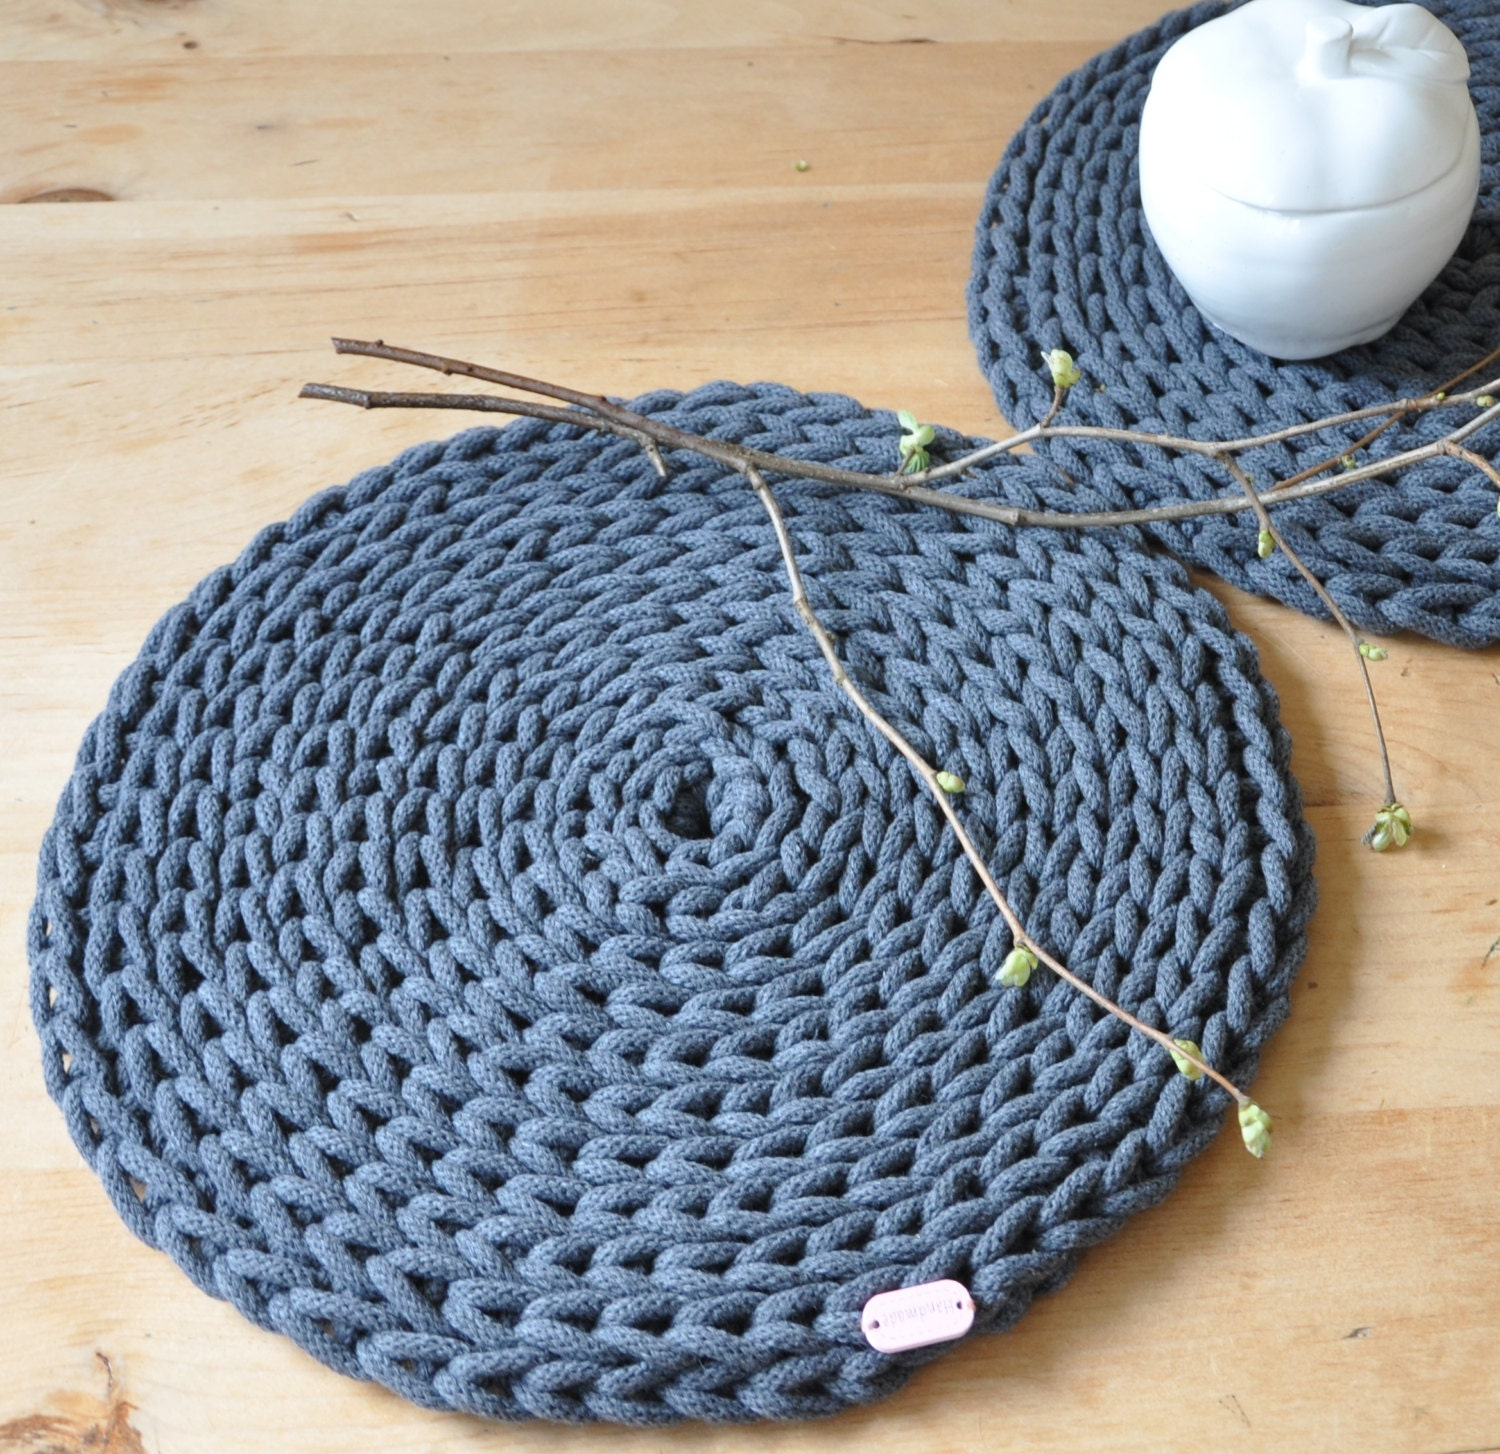 Crochet Round Placemats Set of 2 Graphite by ThoughtsofHomeDecor